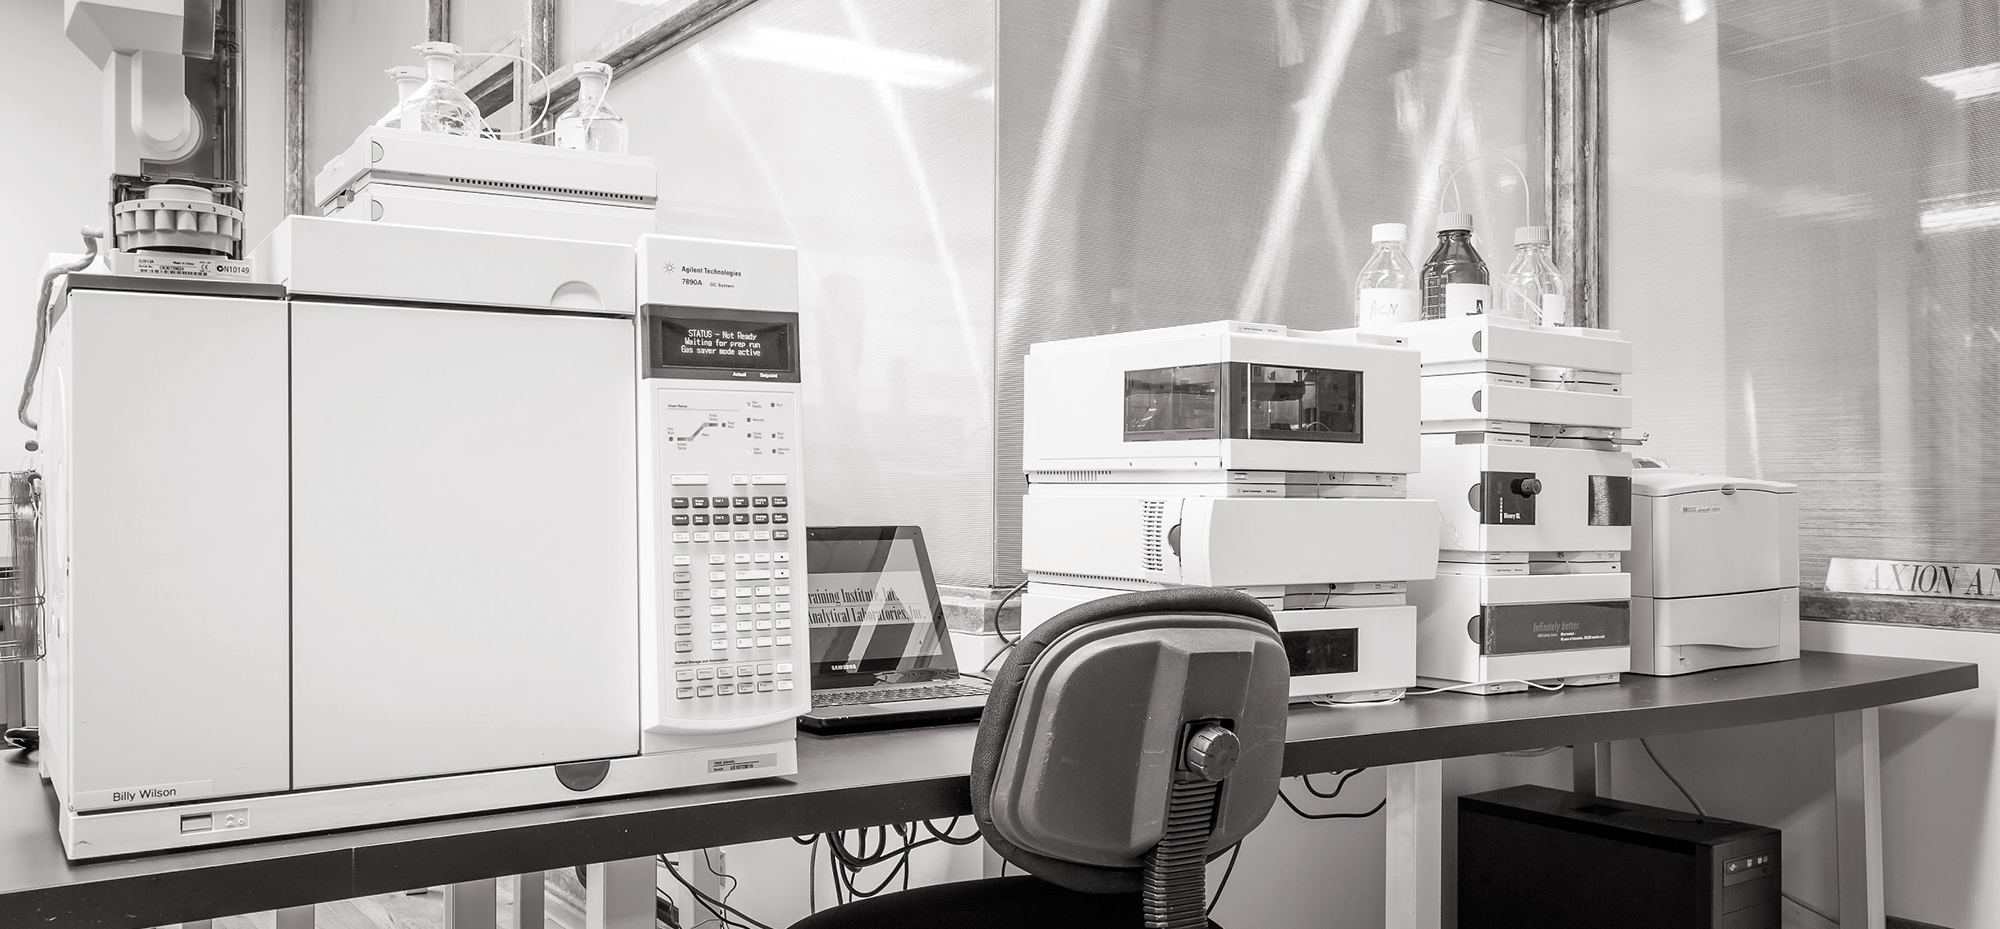 Axion Chromatography Courses